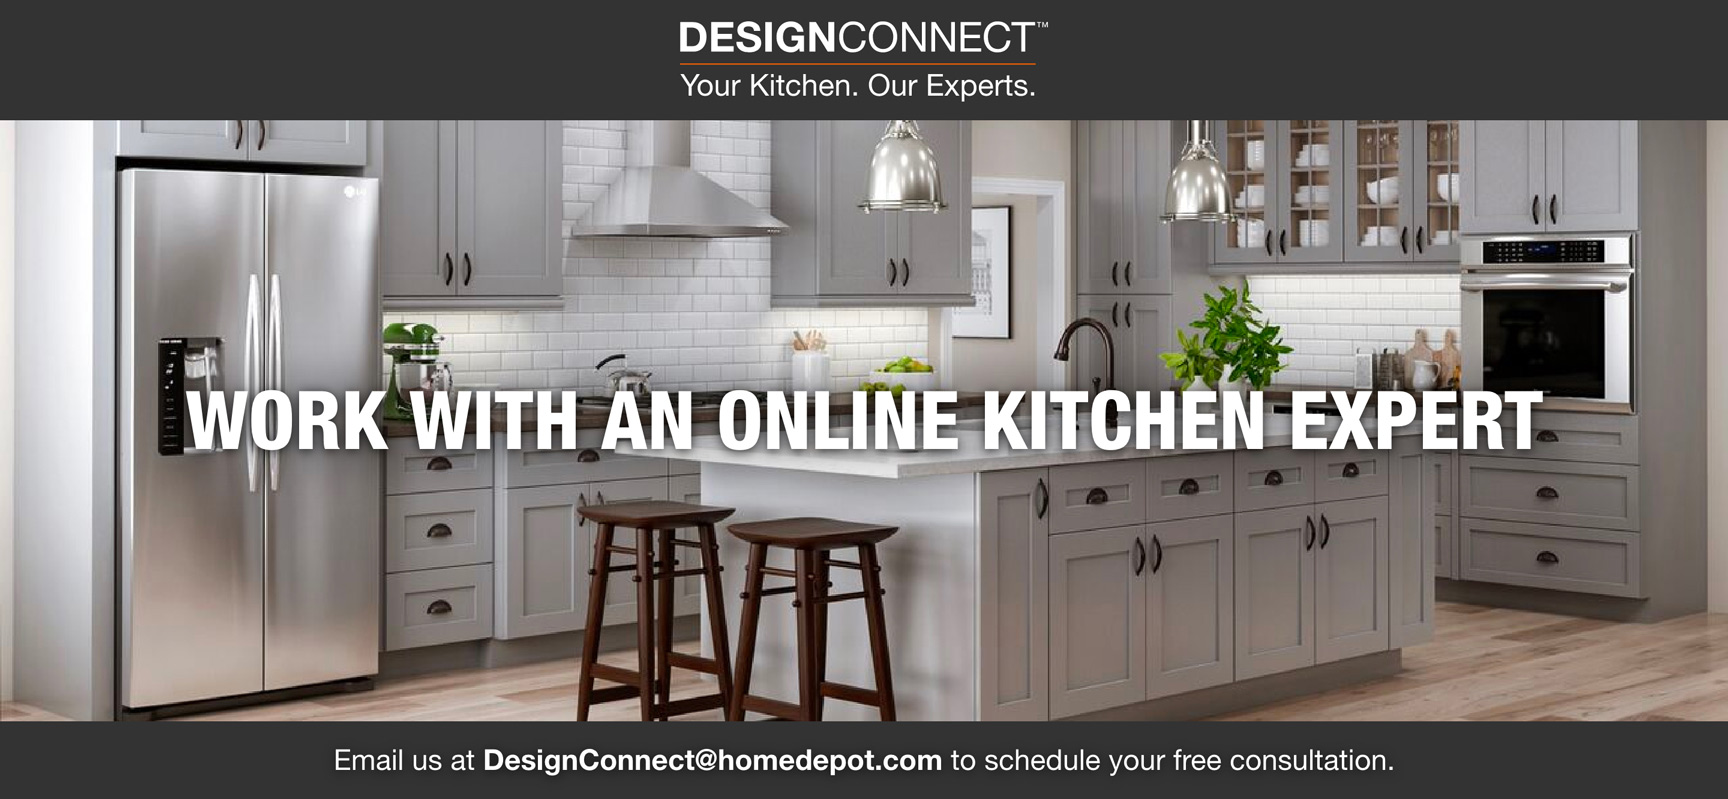 the home depot - designconnect